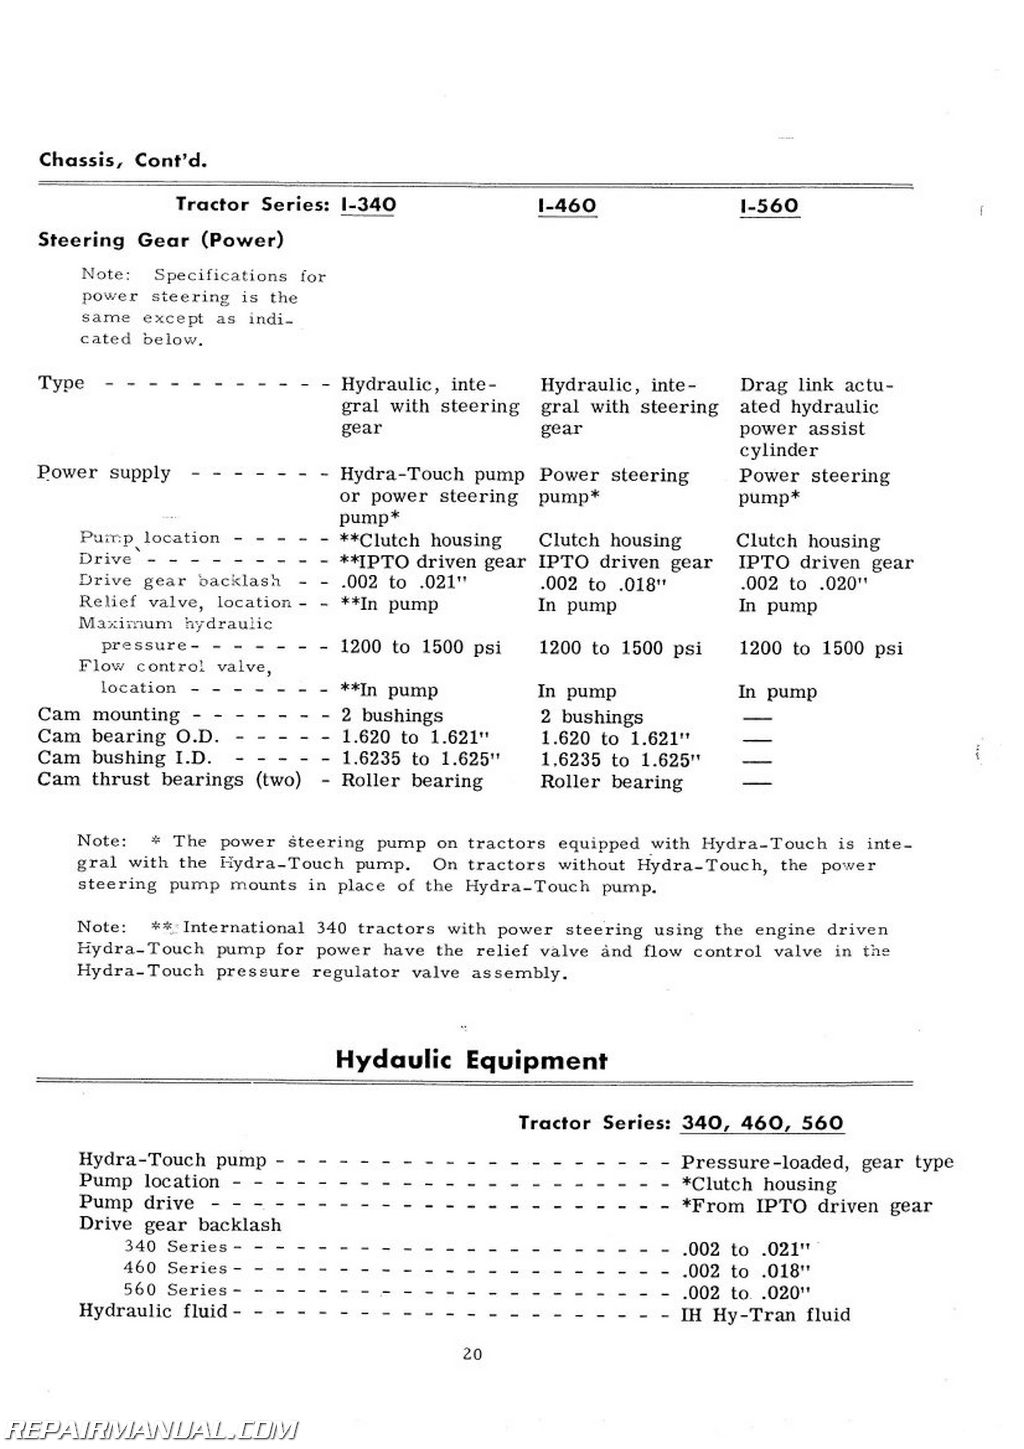 International Harvester And Service Manual Page